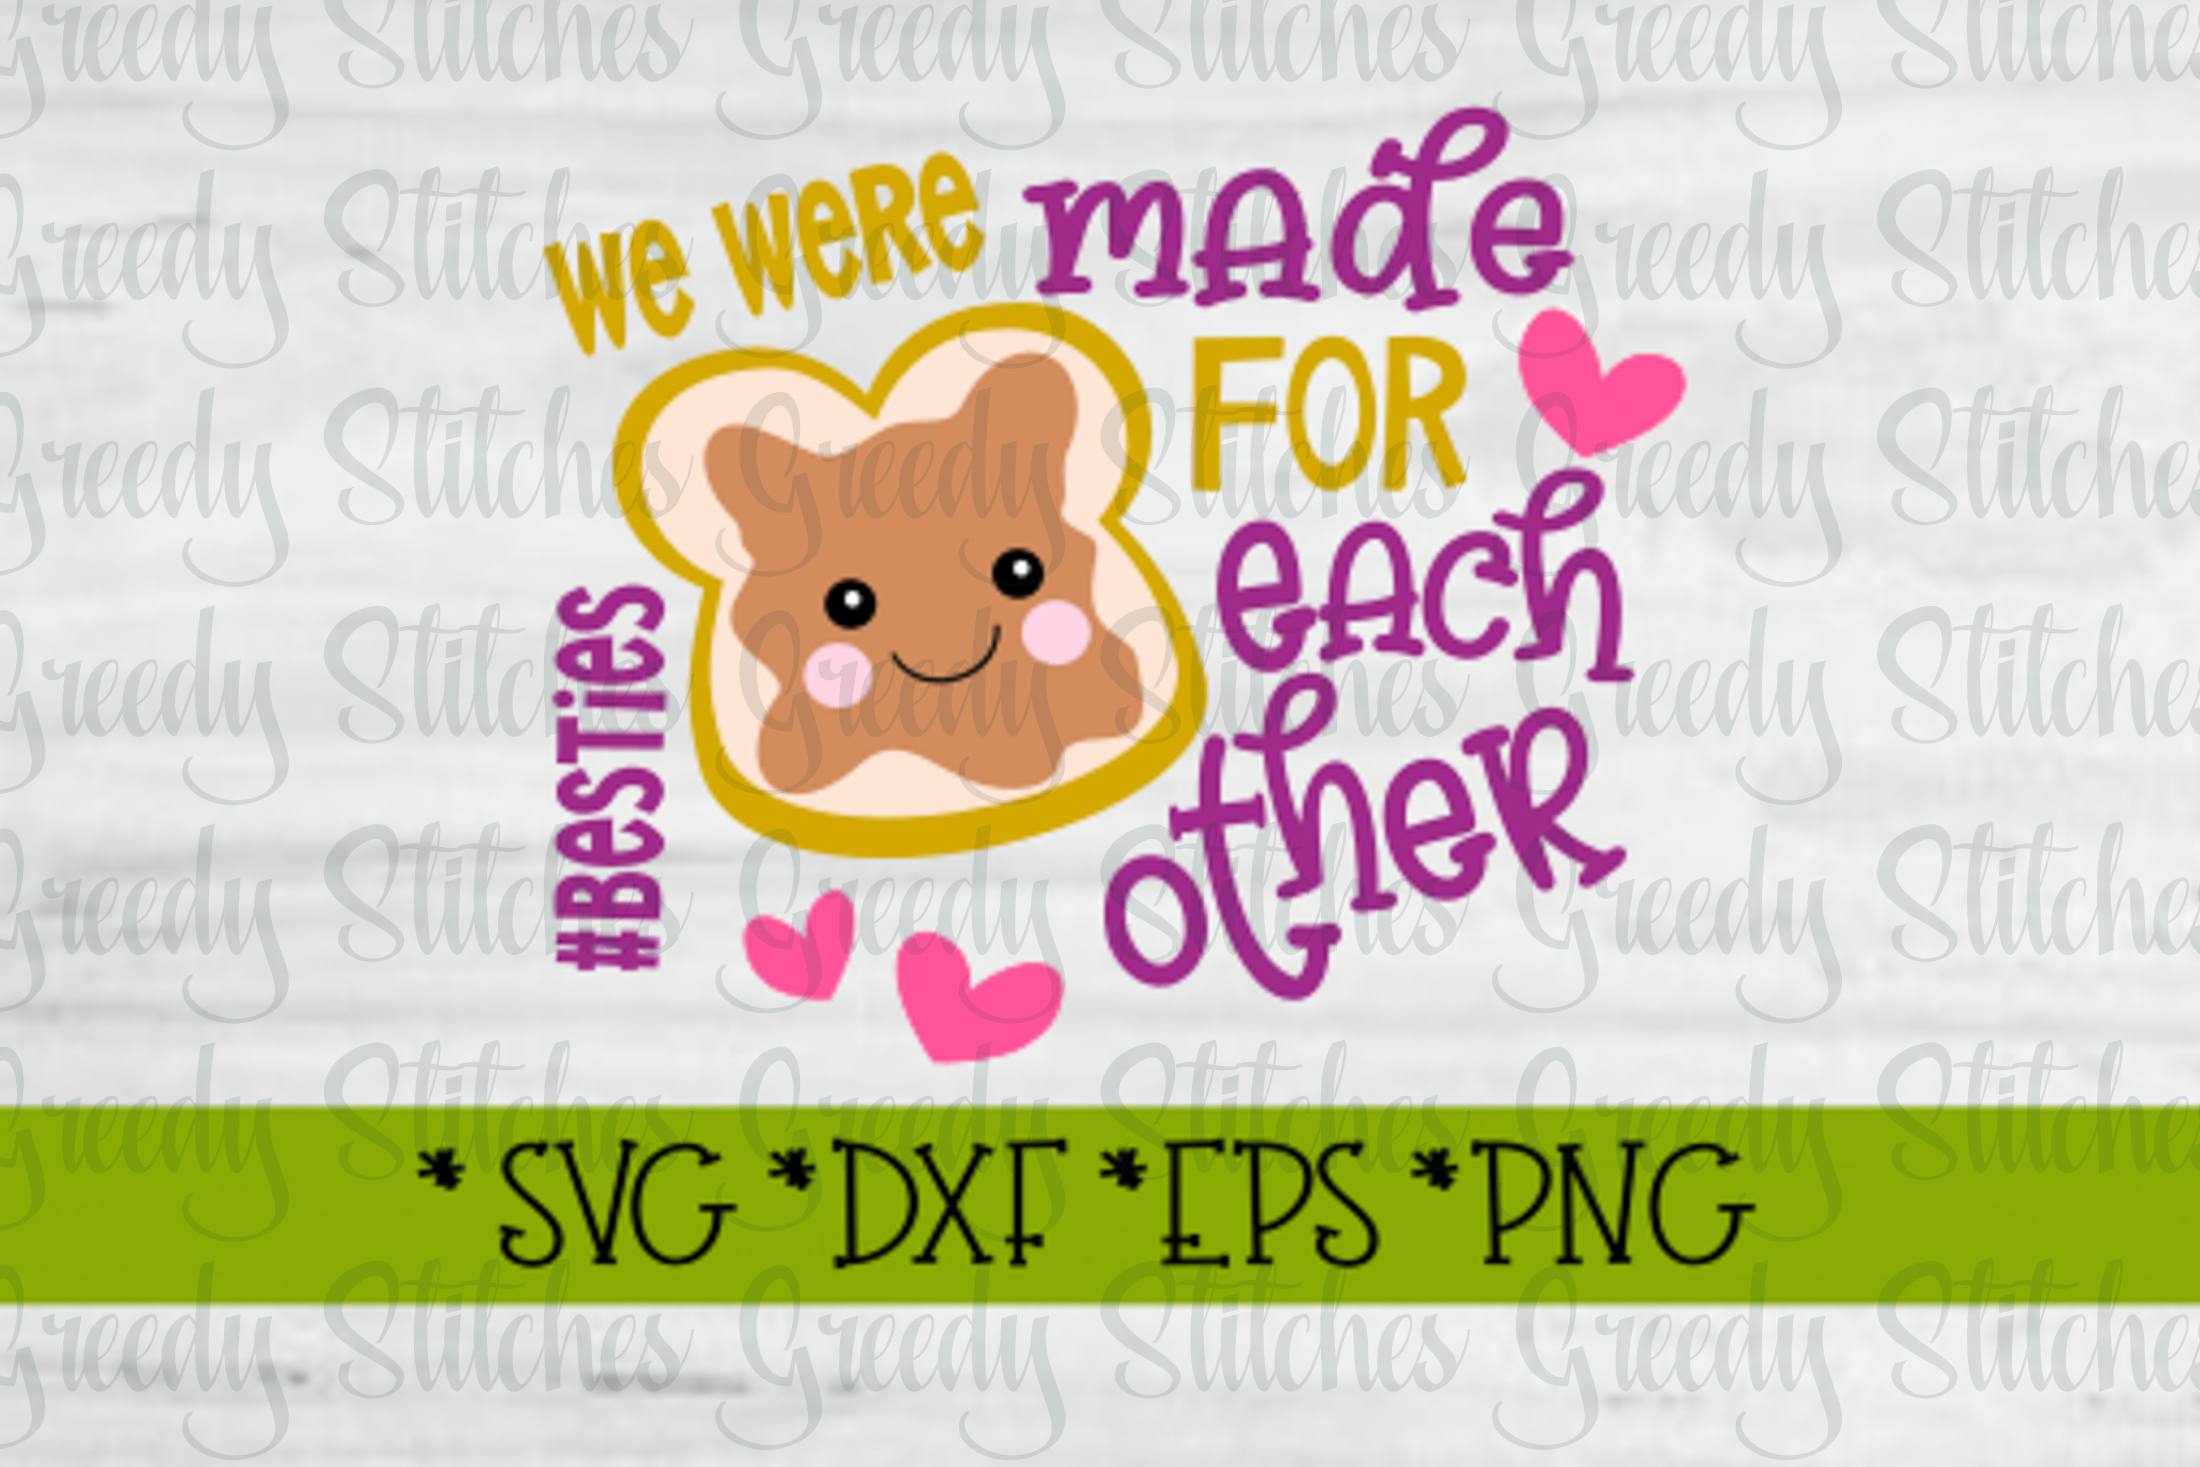 Peanut Butter & Jelly SVG DXF EPS PNG | Best Friends SVG DXF example image 13